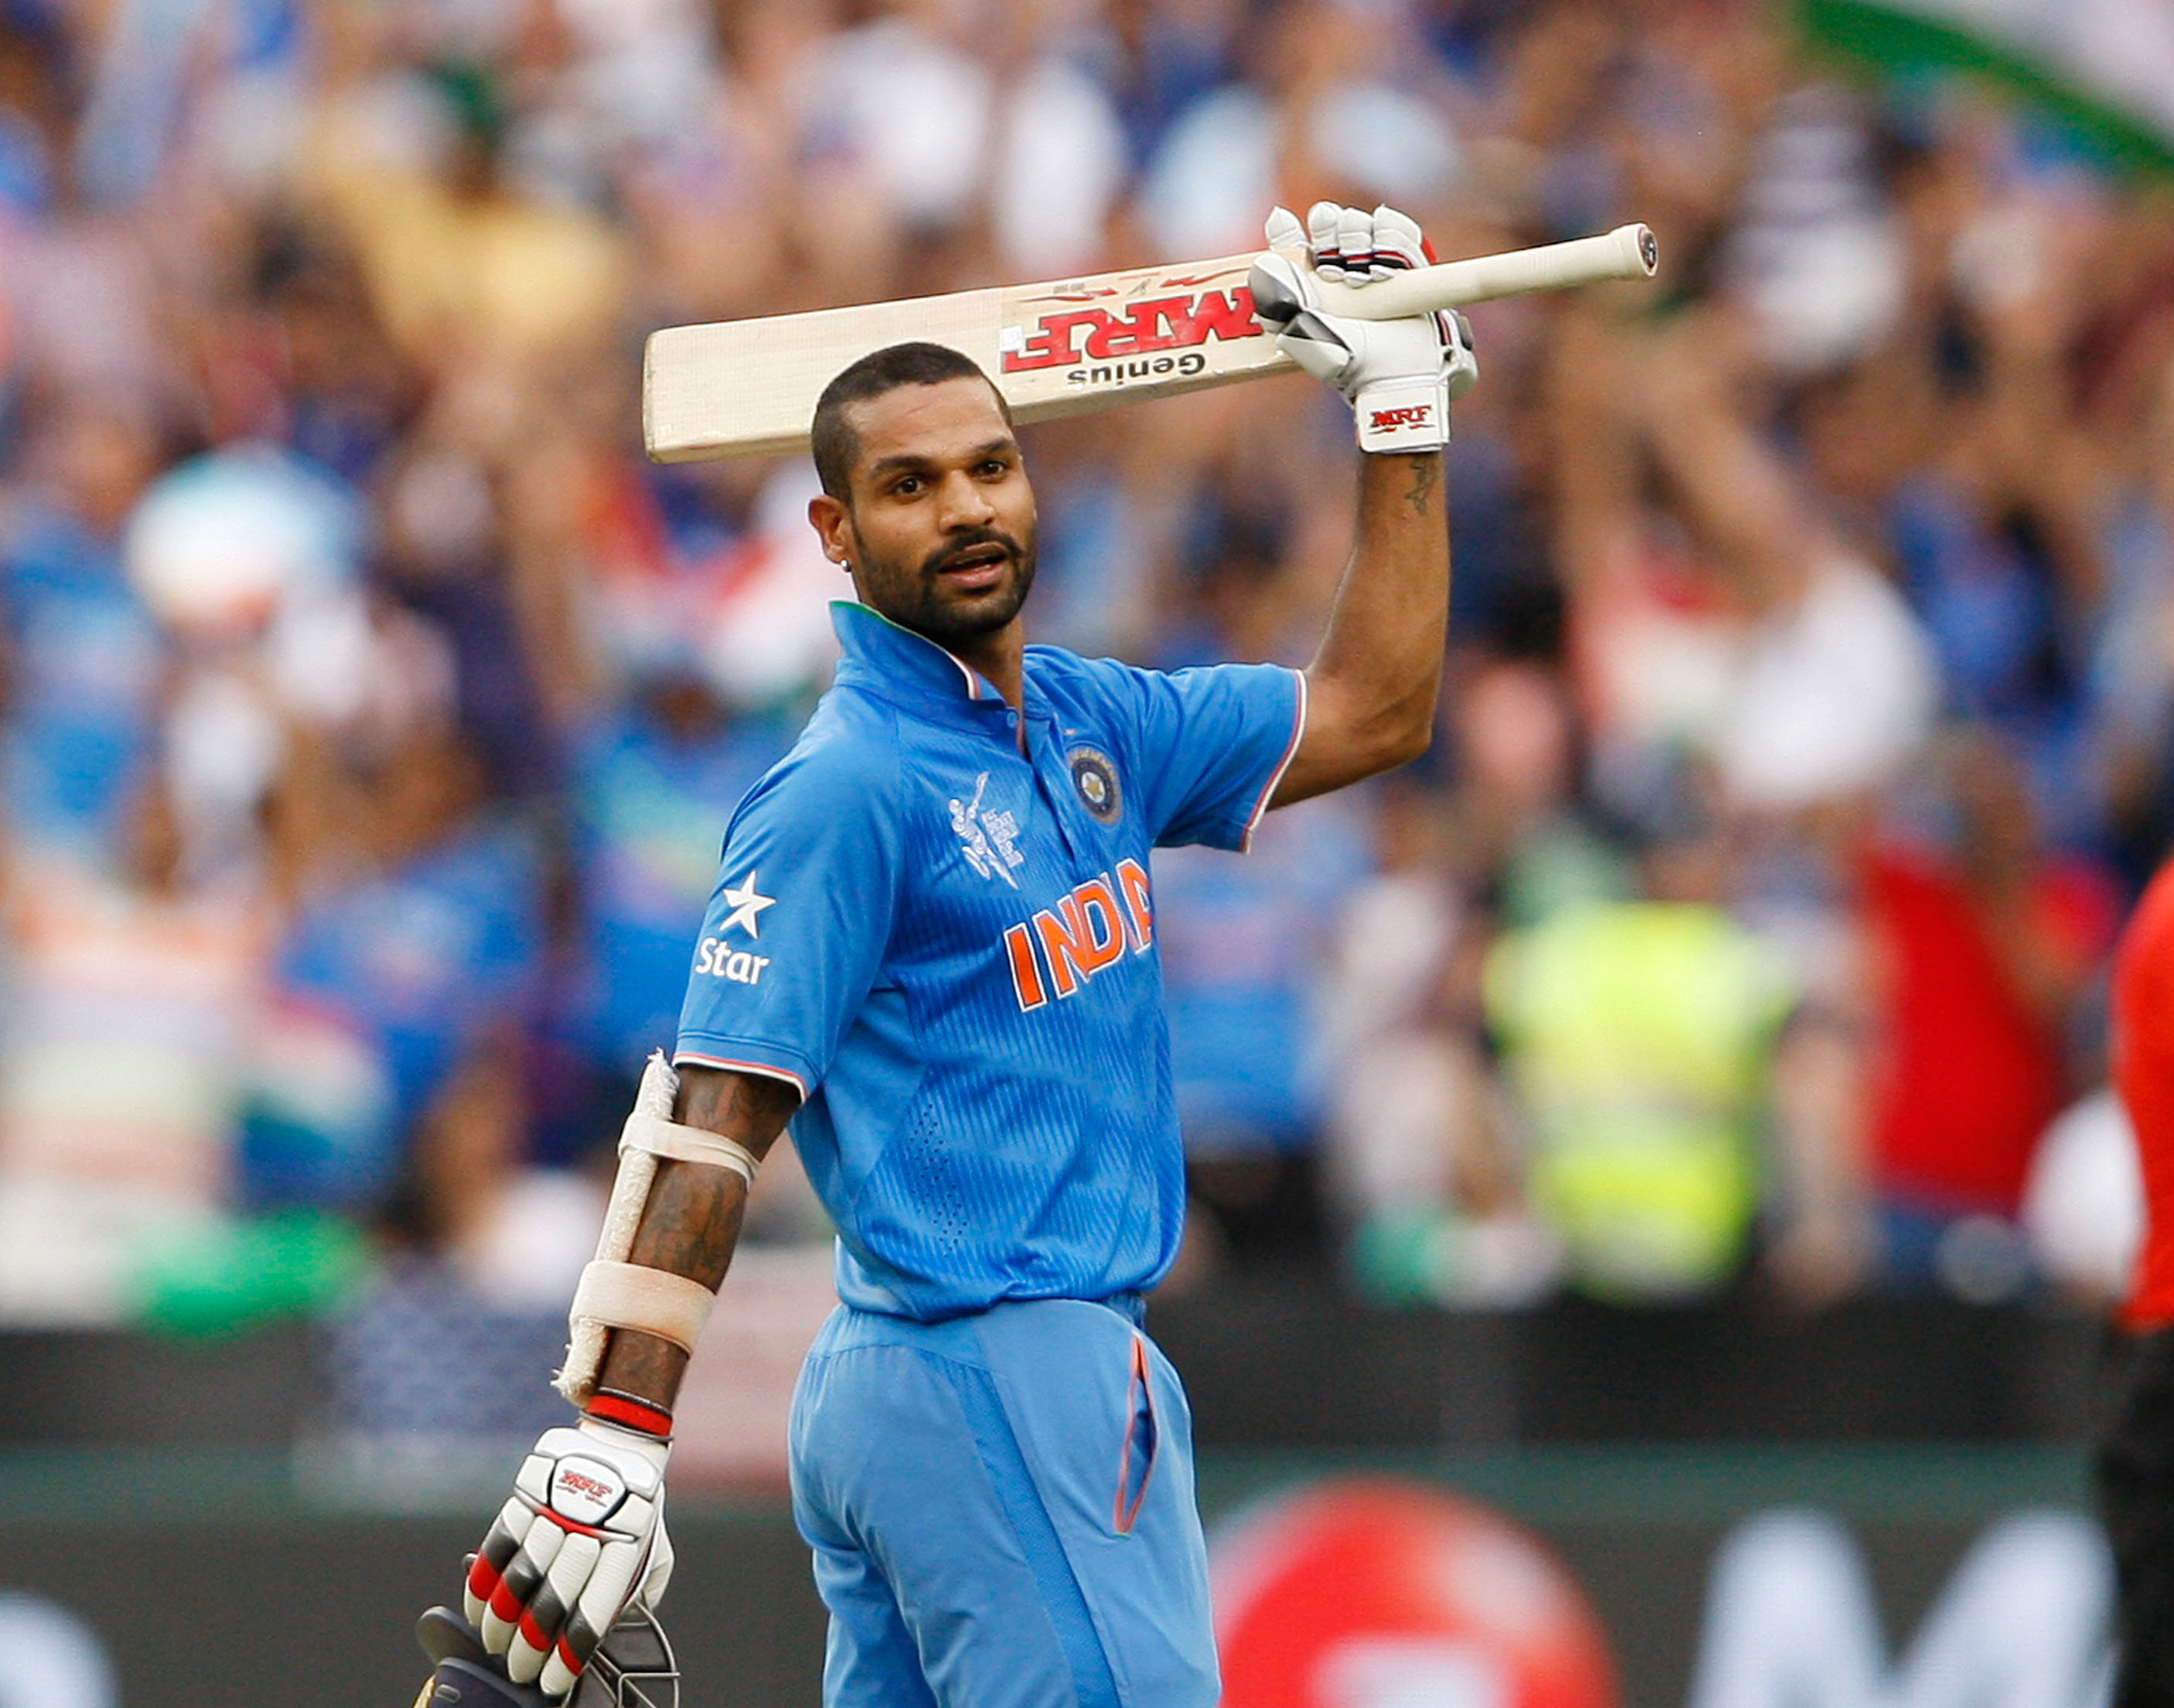 shikhar dhawan - photo #36